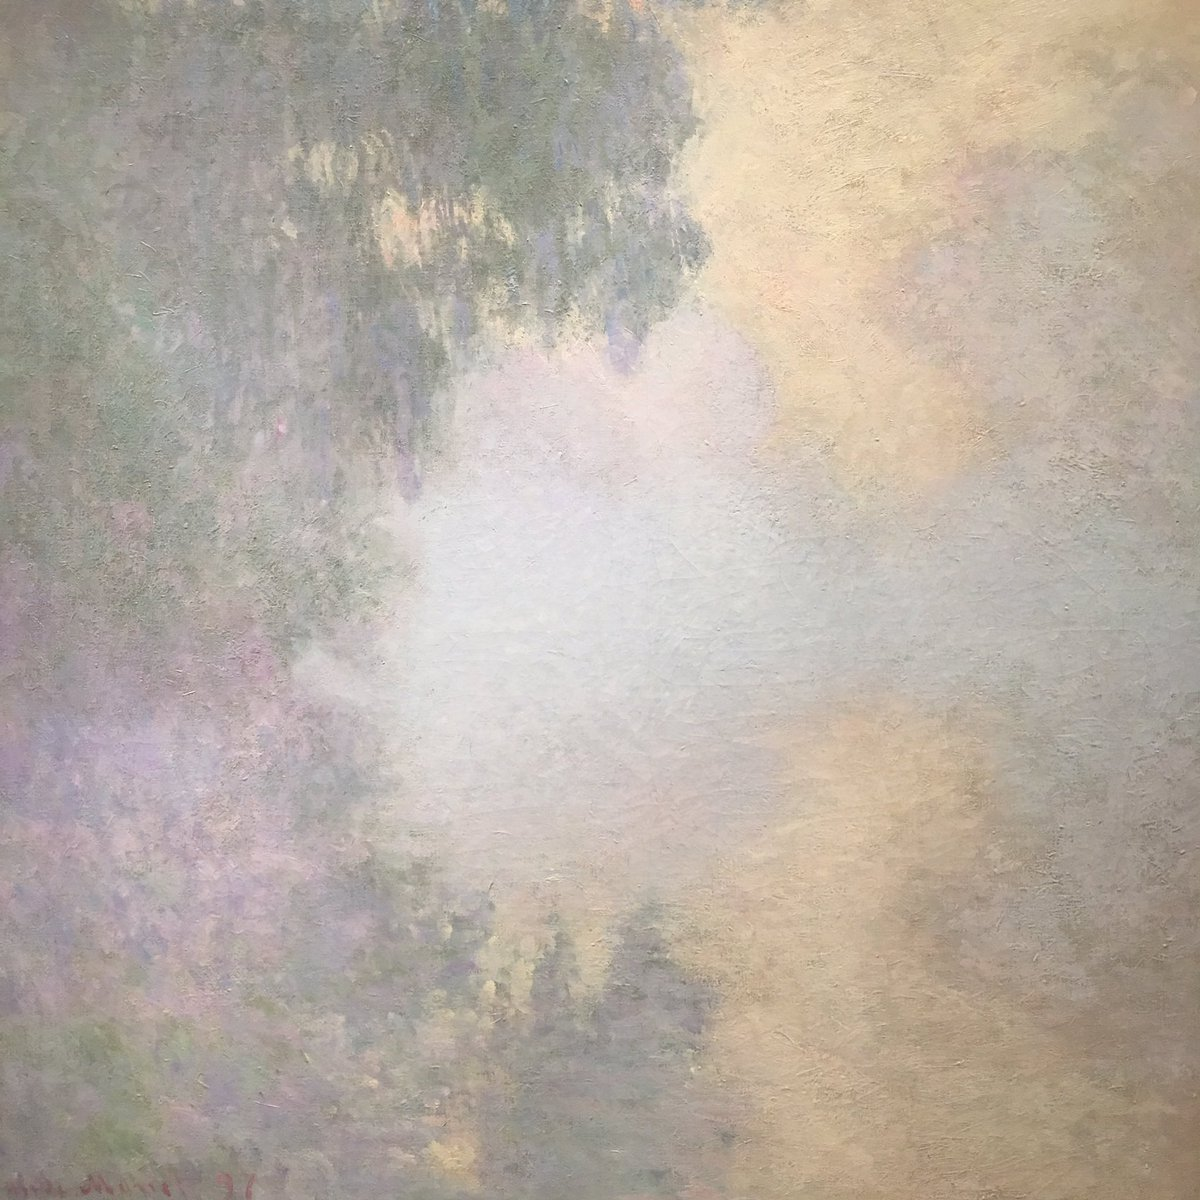 Staring at #monet for an hour. The actual real painting light on river near Giverney. So delicate &amp; diffused. #awe #light #mist #monet #gee<br>http://pic.twitter.com/h18L6f7pbm